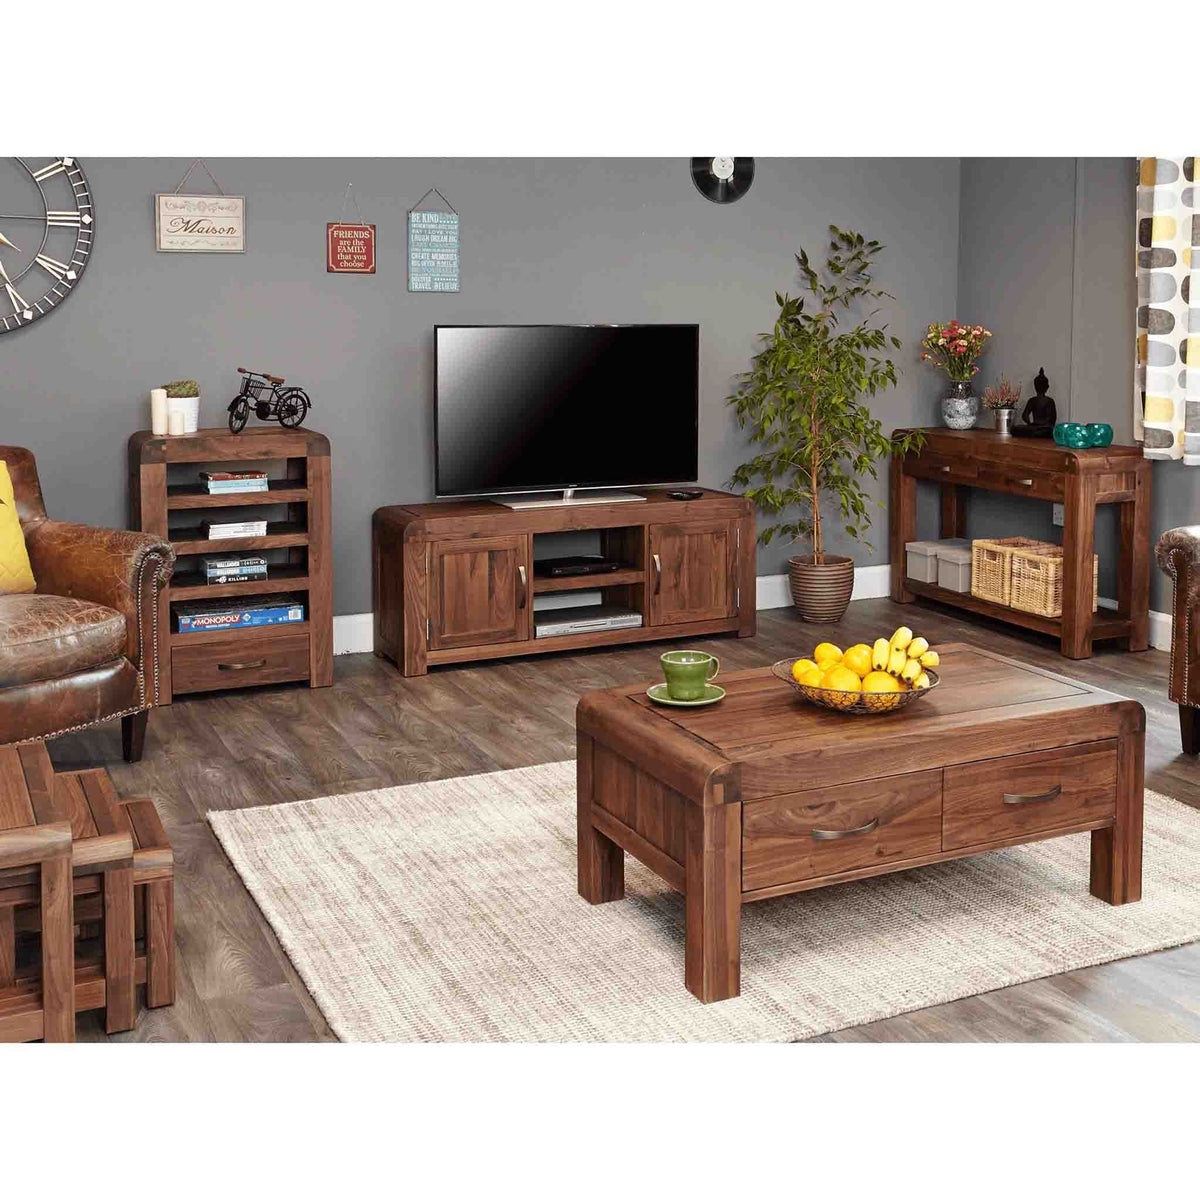 Lifestyle image of The Salem Walnut Large Wooden TV Stand